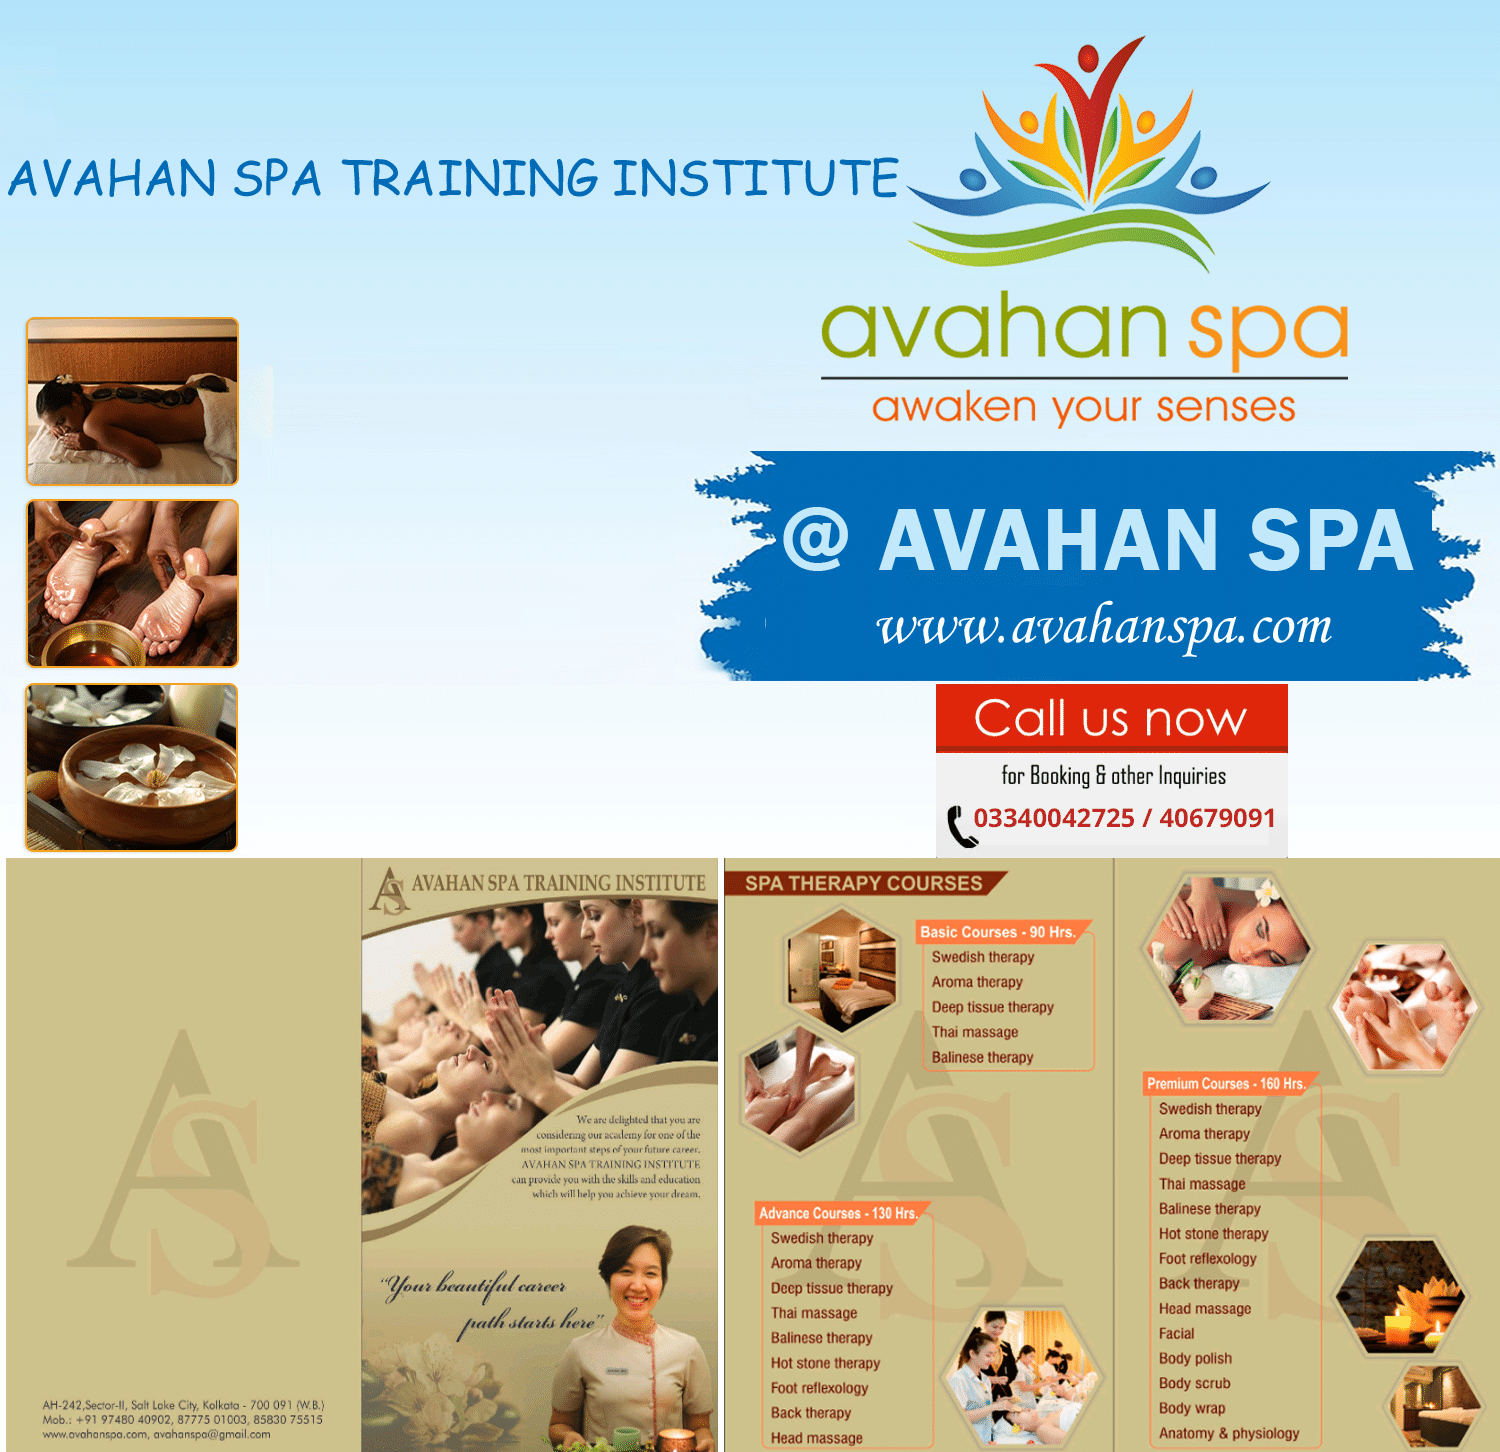 AVAHAN SPA TRAINING INSTITUTE